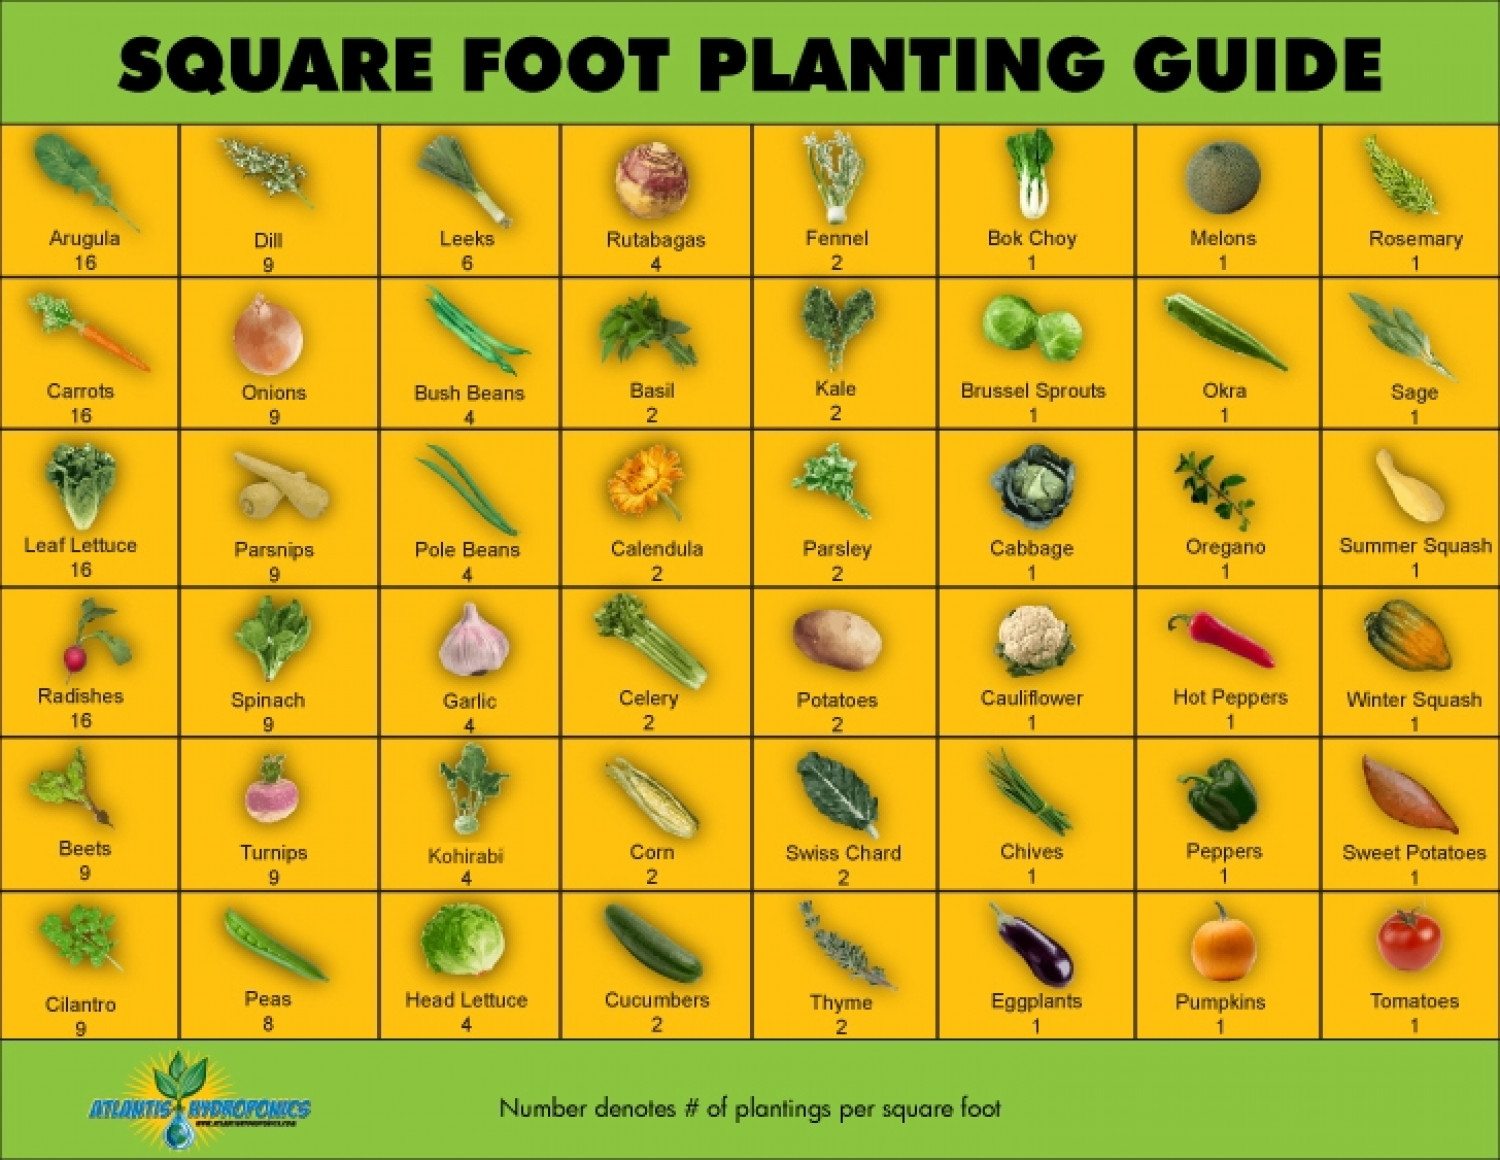 Square Foot Gardening: A Garden for Everyone! Infographic